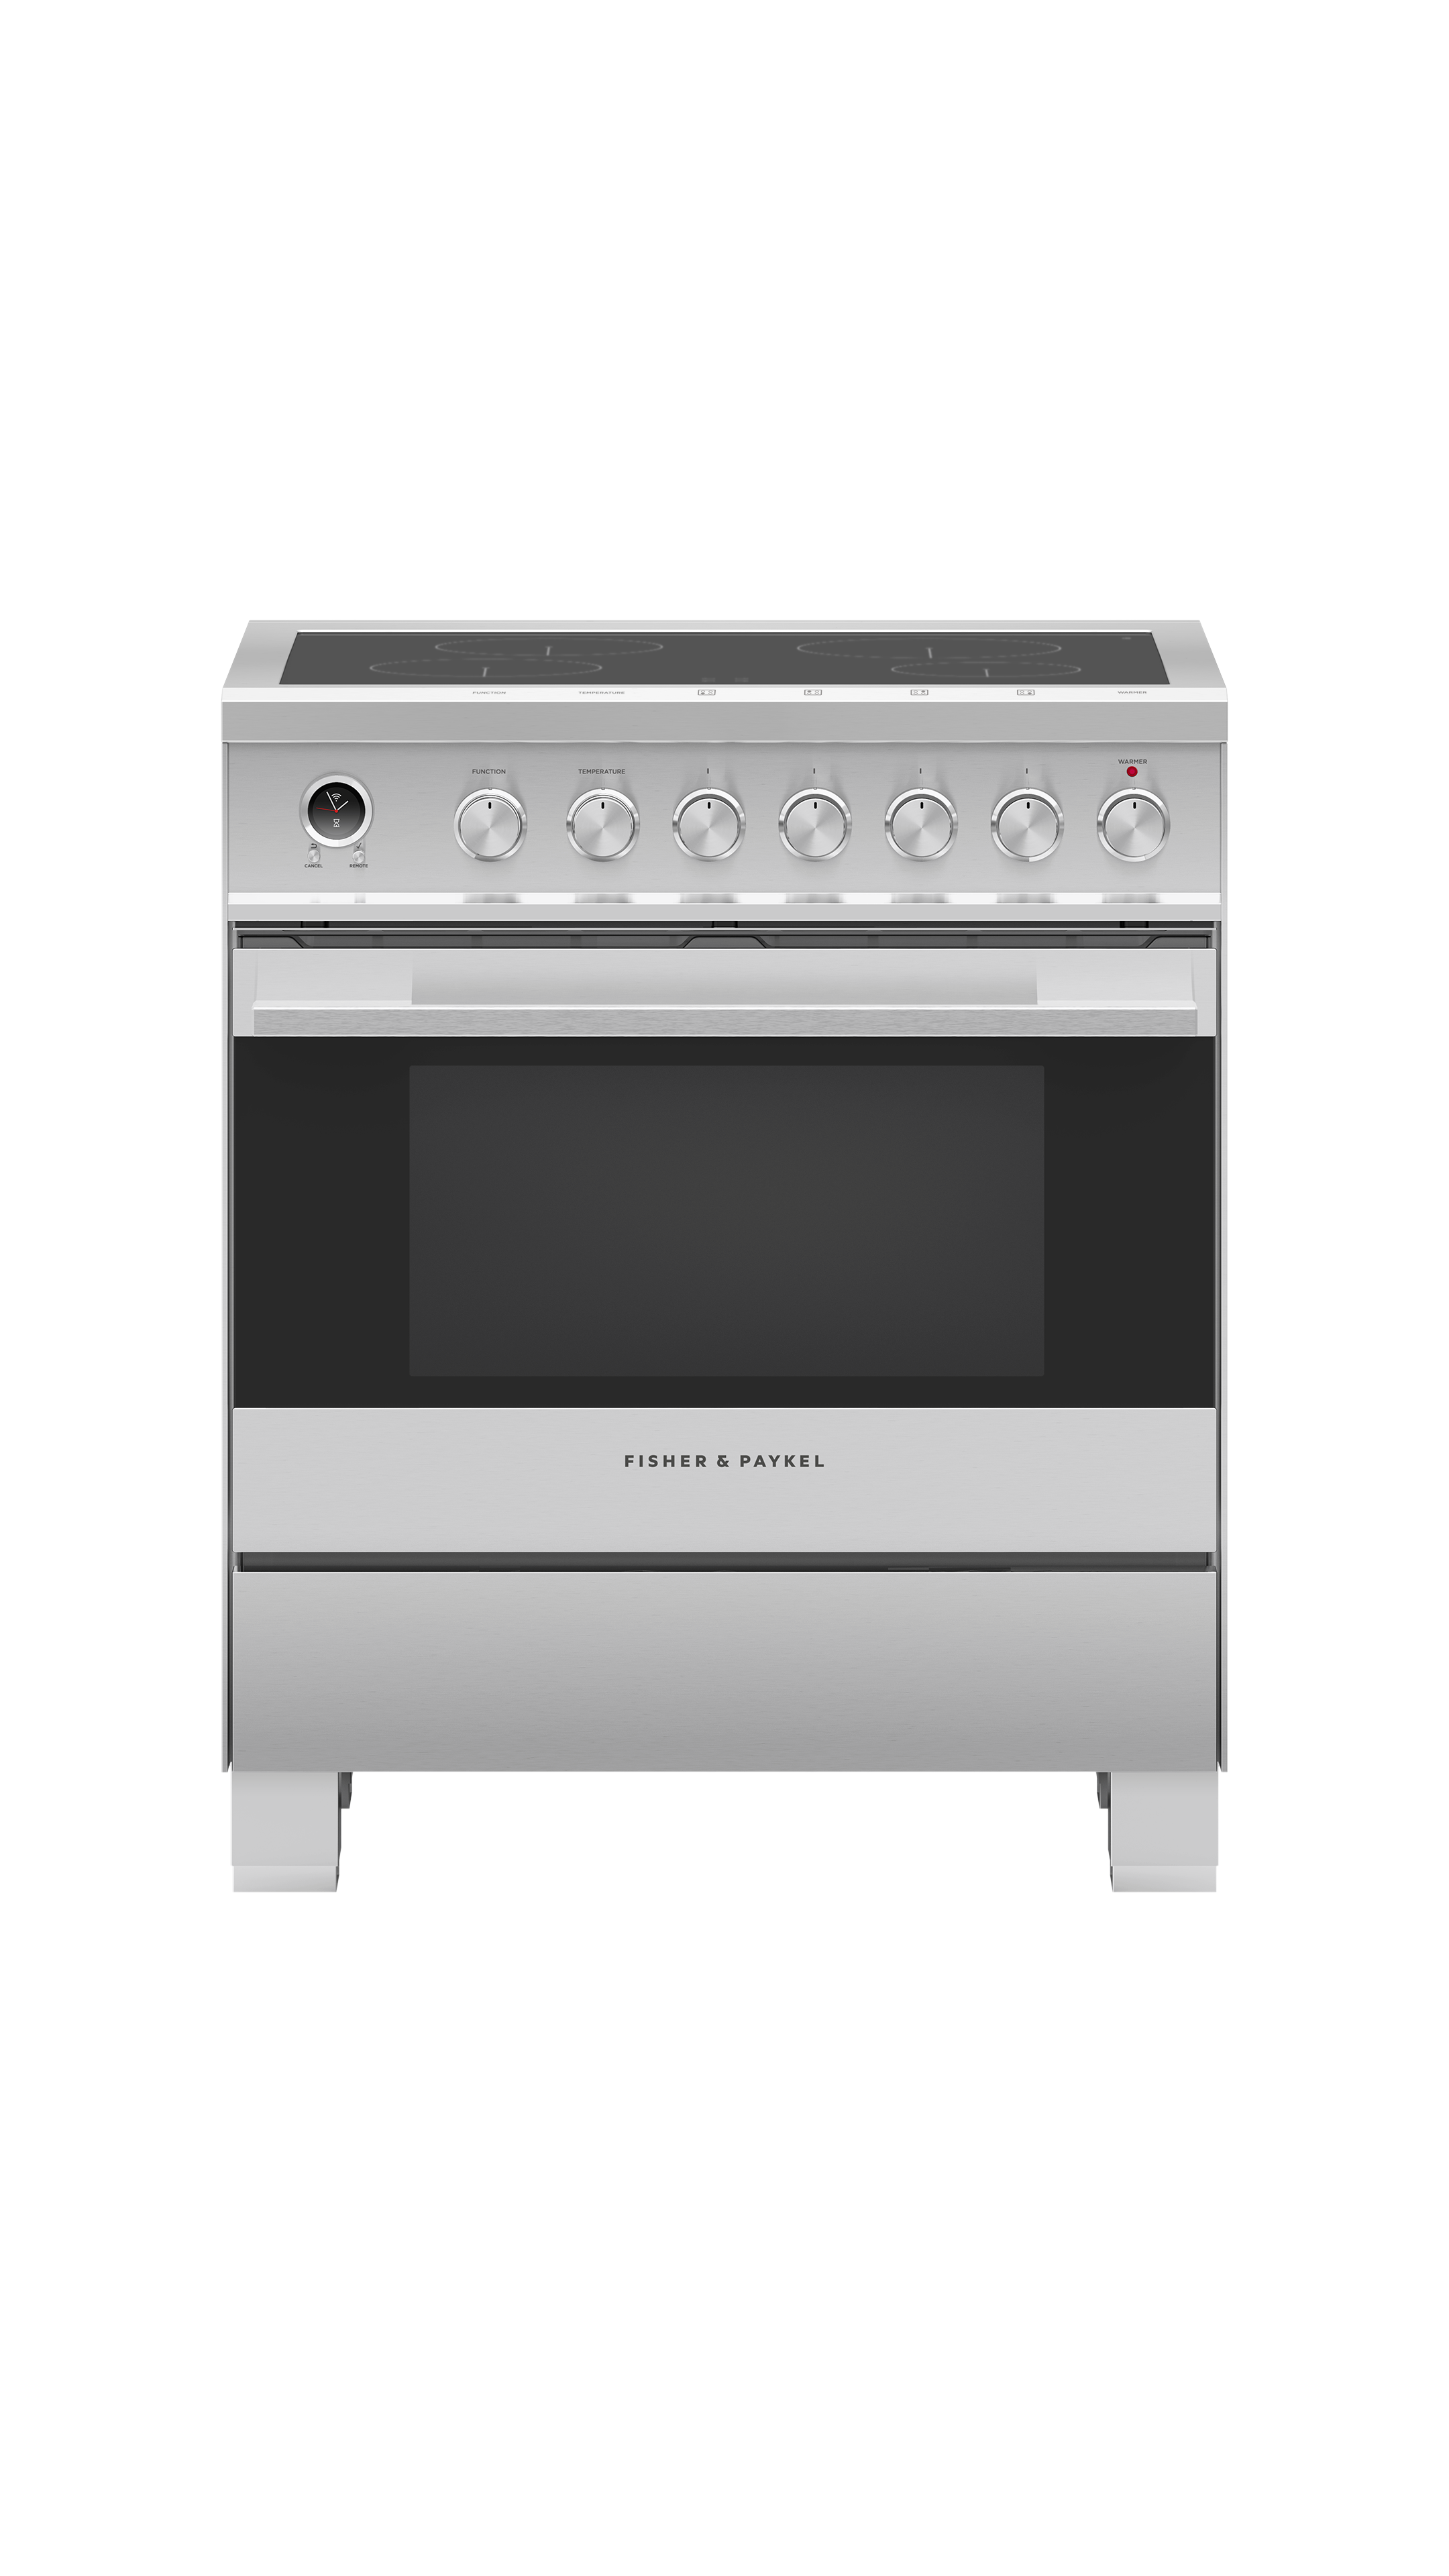 Model: OR30SDI6X1 | Fisher and Paykel Induction Range 30""